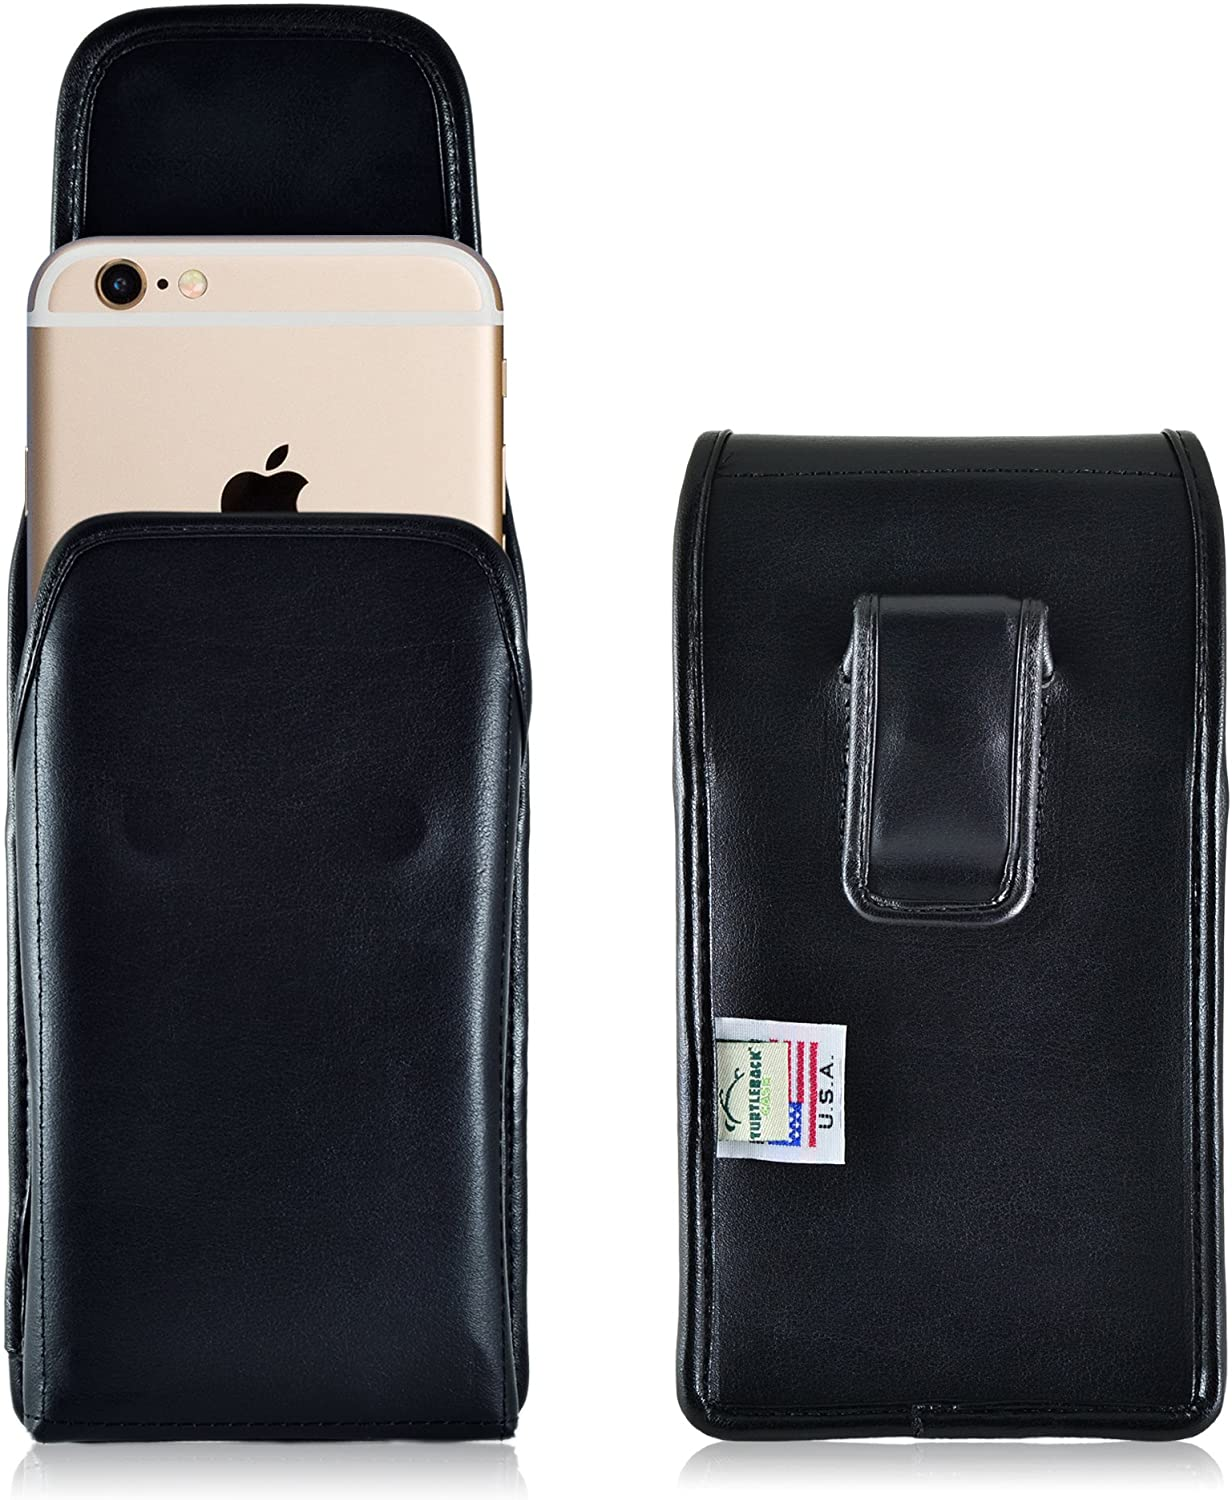 Turtleback Holster Compatible with Apple iPhone 6S, iPhone 6 Black Vertical Belt Case Leather Pouch with Executive Belt Clip Made in USA